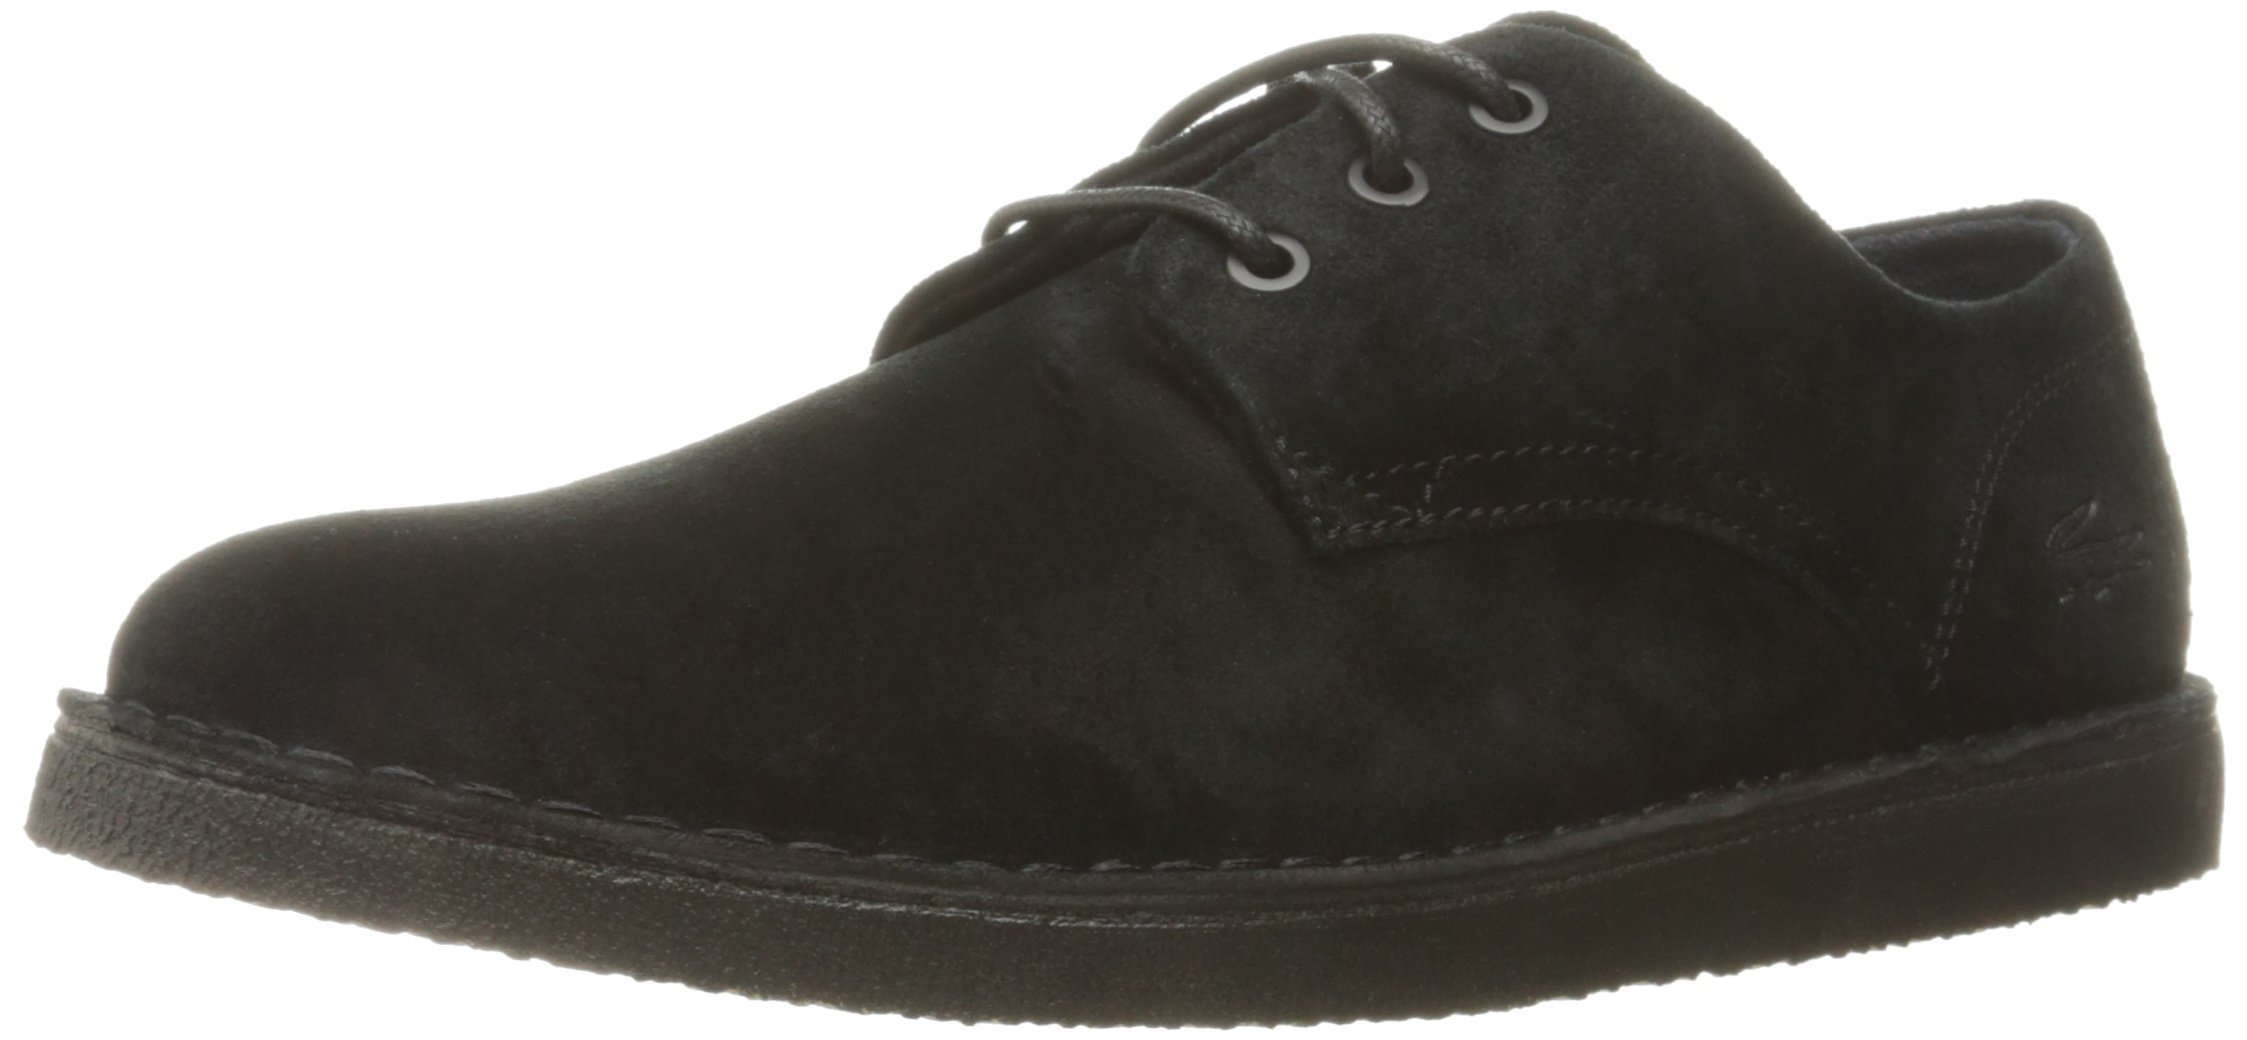 Lacoste Men's Bradshaw 316 1 Cam Oxford, Black, 10 M US